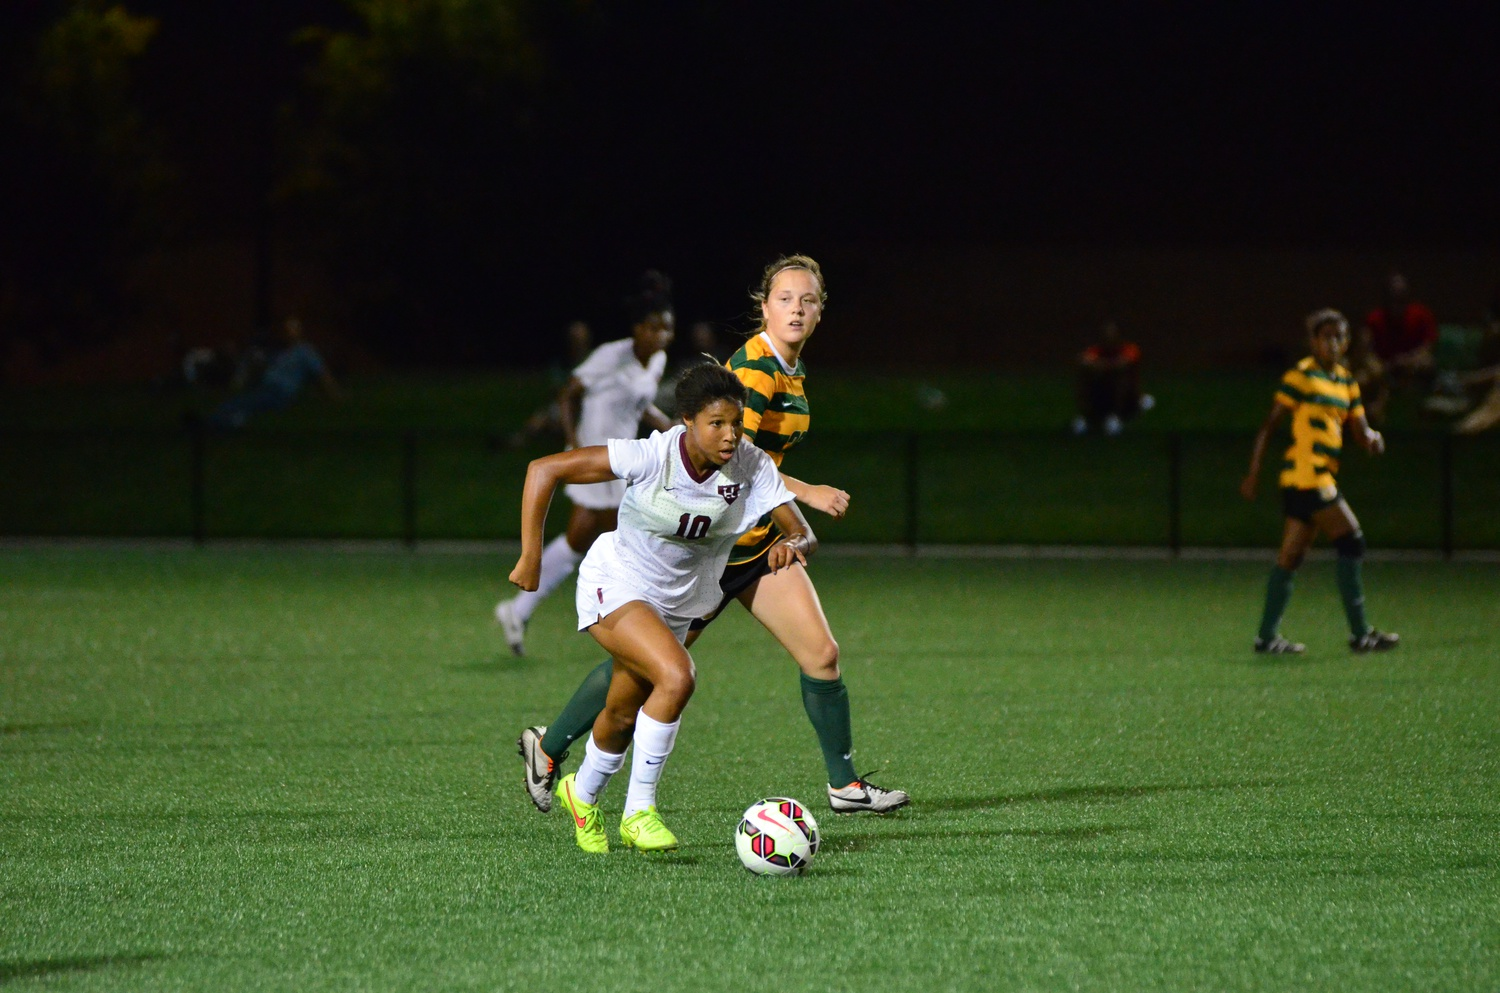 Junior forward Midge Purce, shown in action on Sept. 5, 2014, scored the game's first goal against UNH Thursday night.